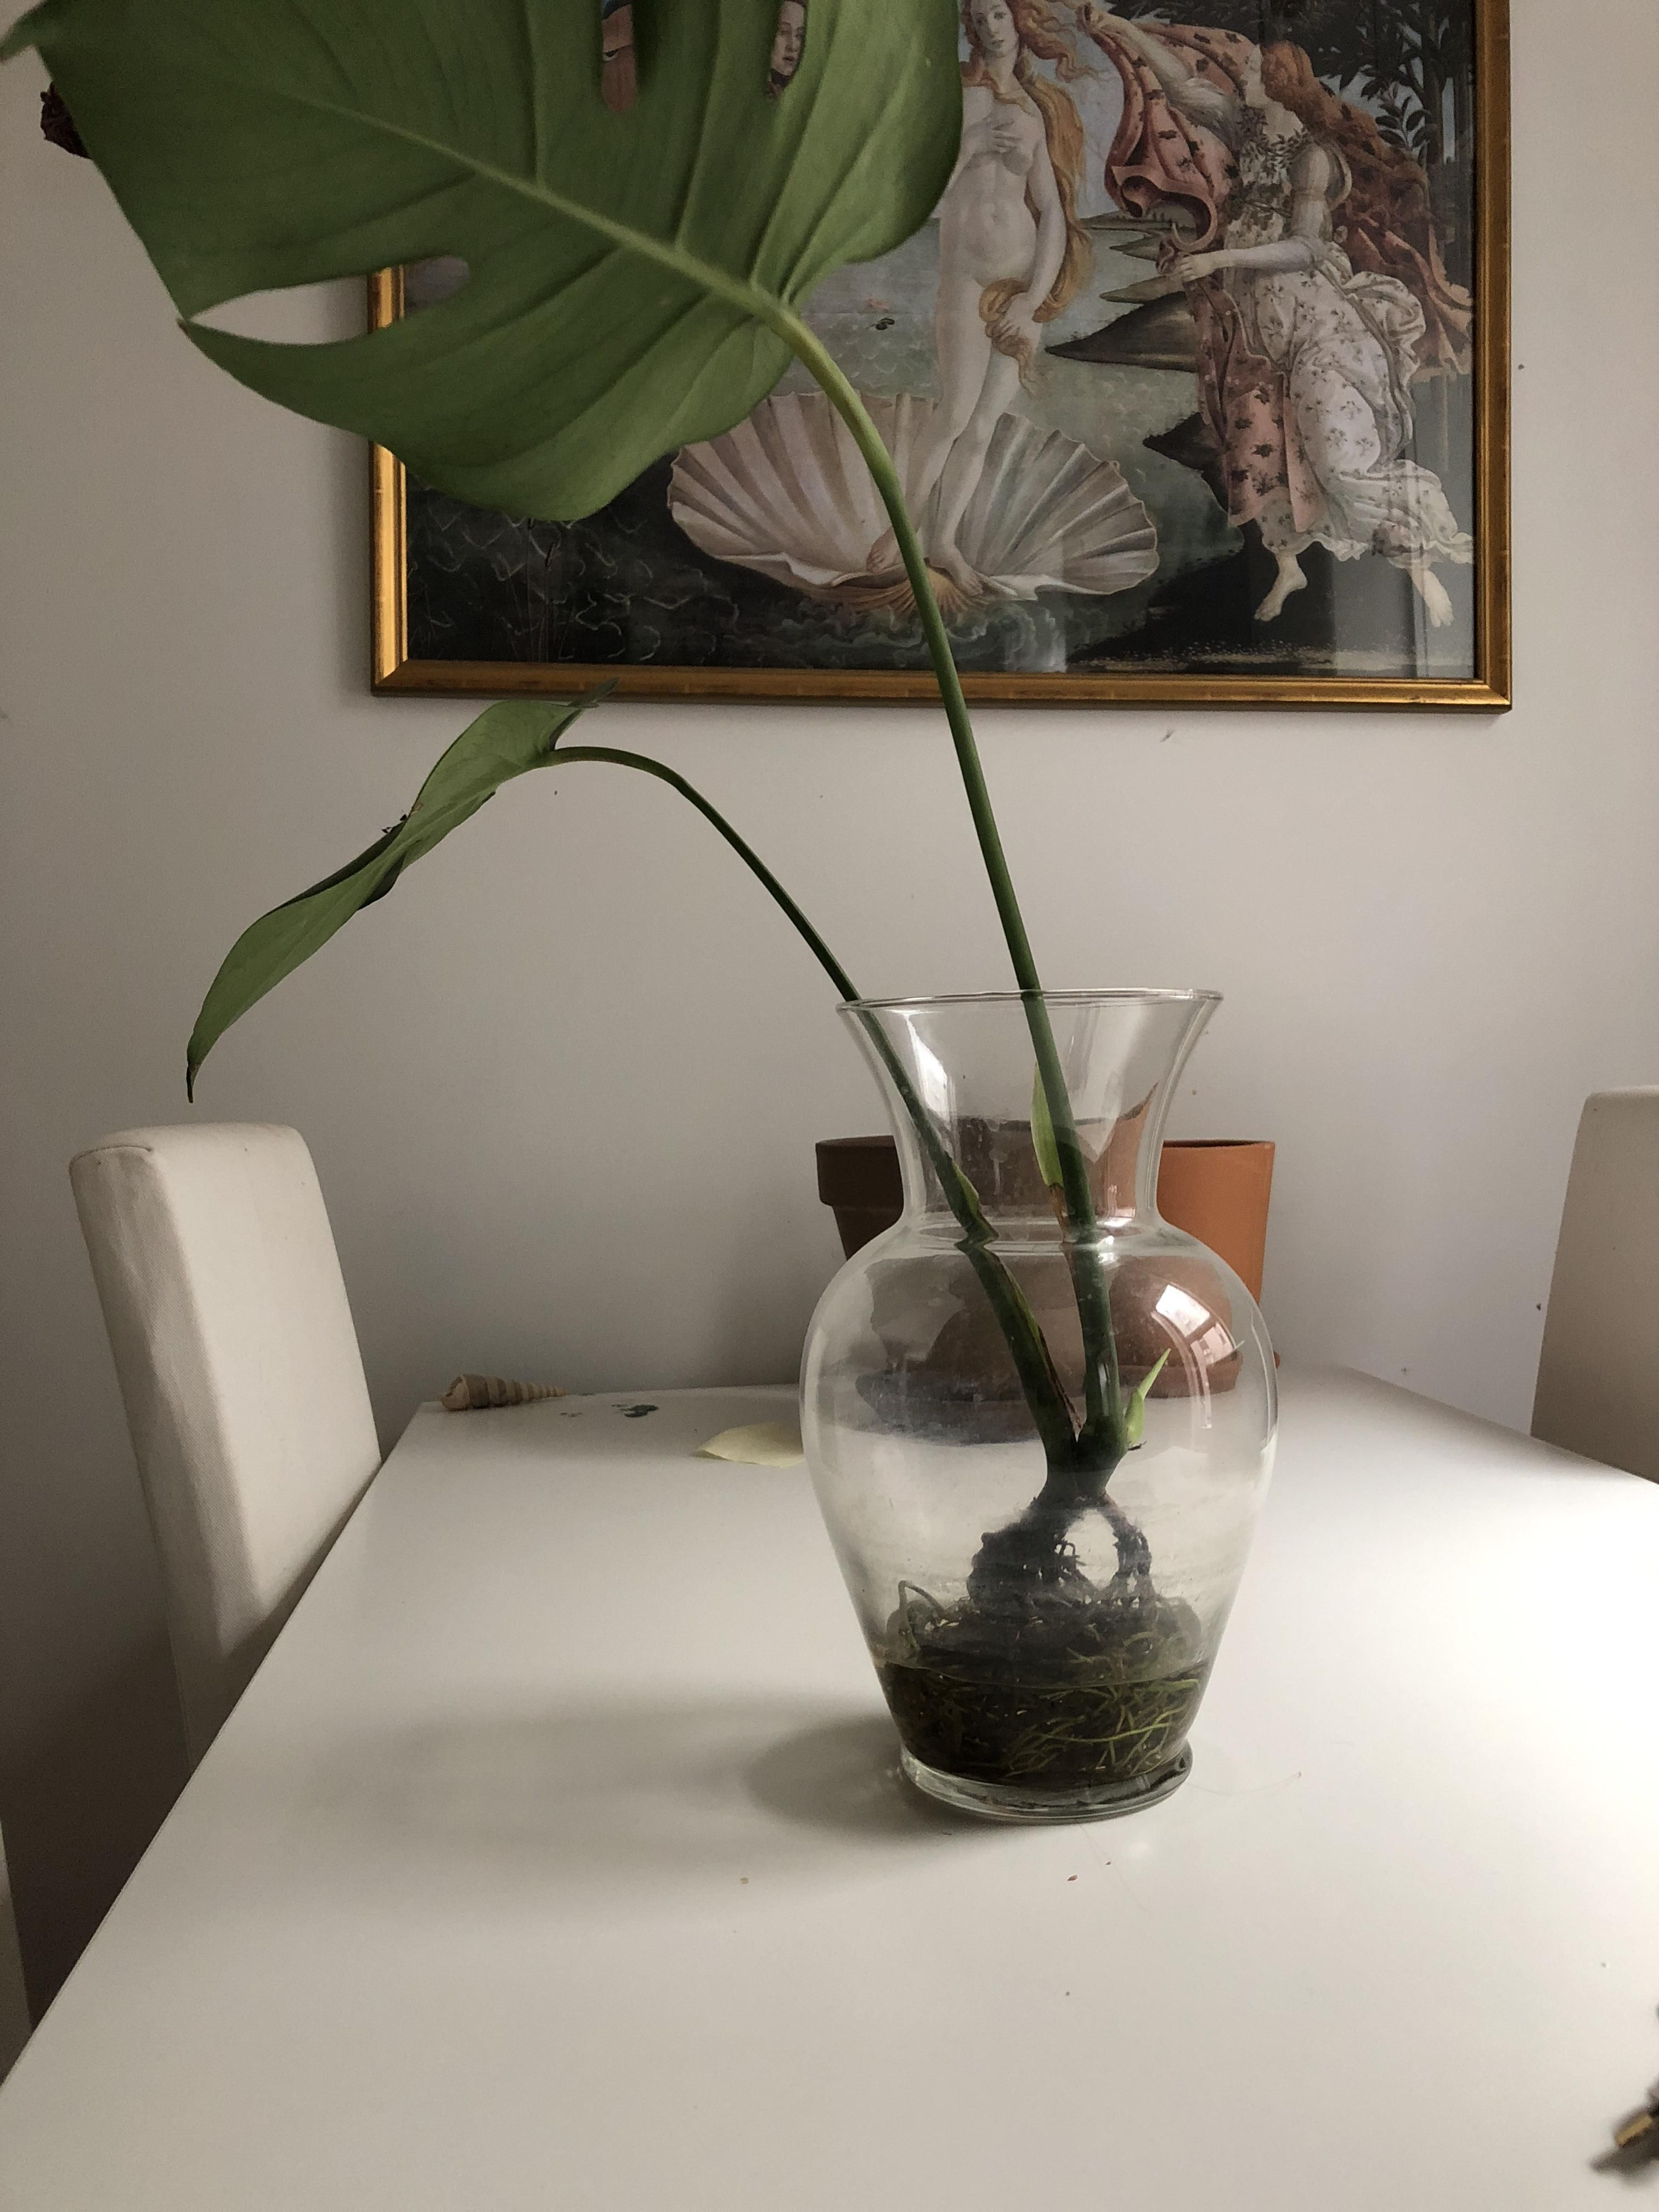 Transferring rooted plants from water to soil? HELP! Am I able to